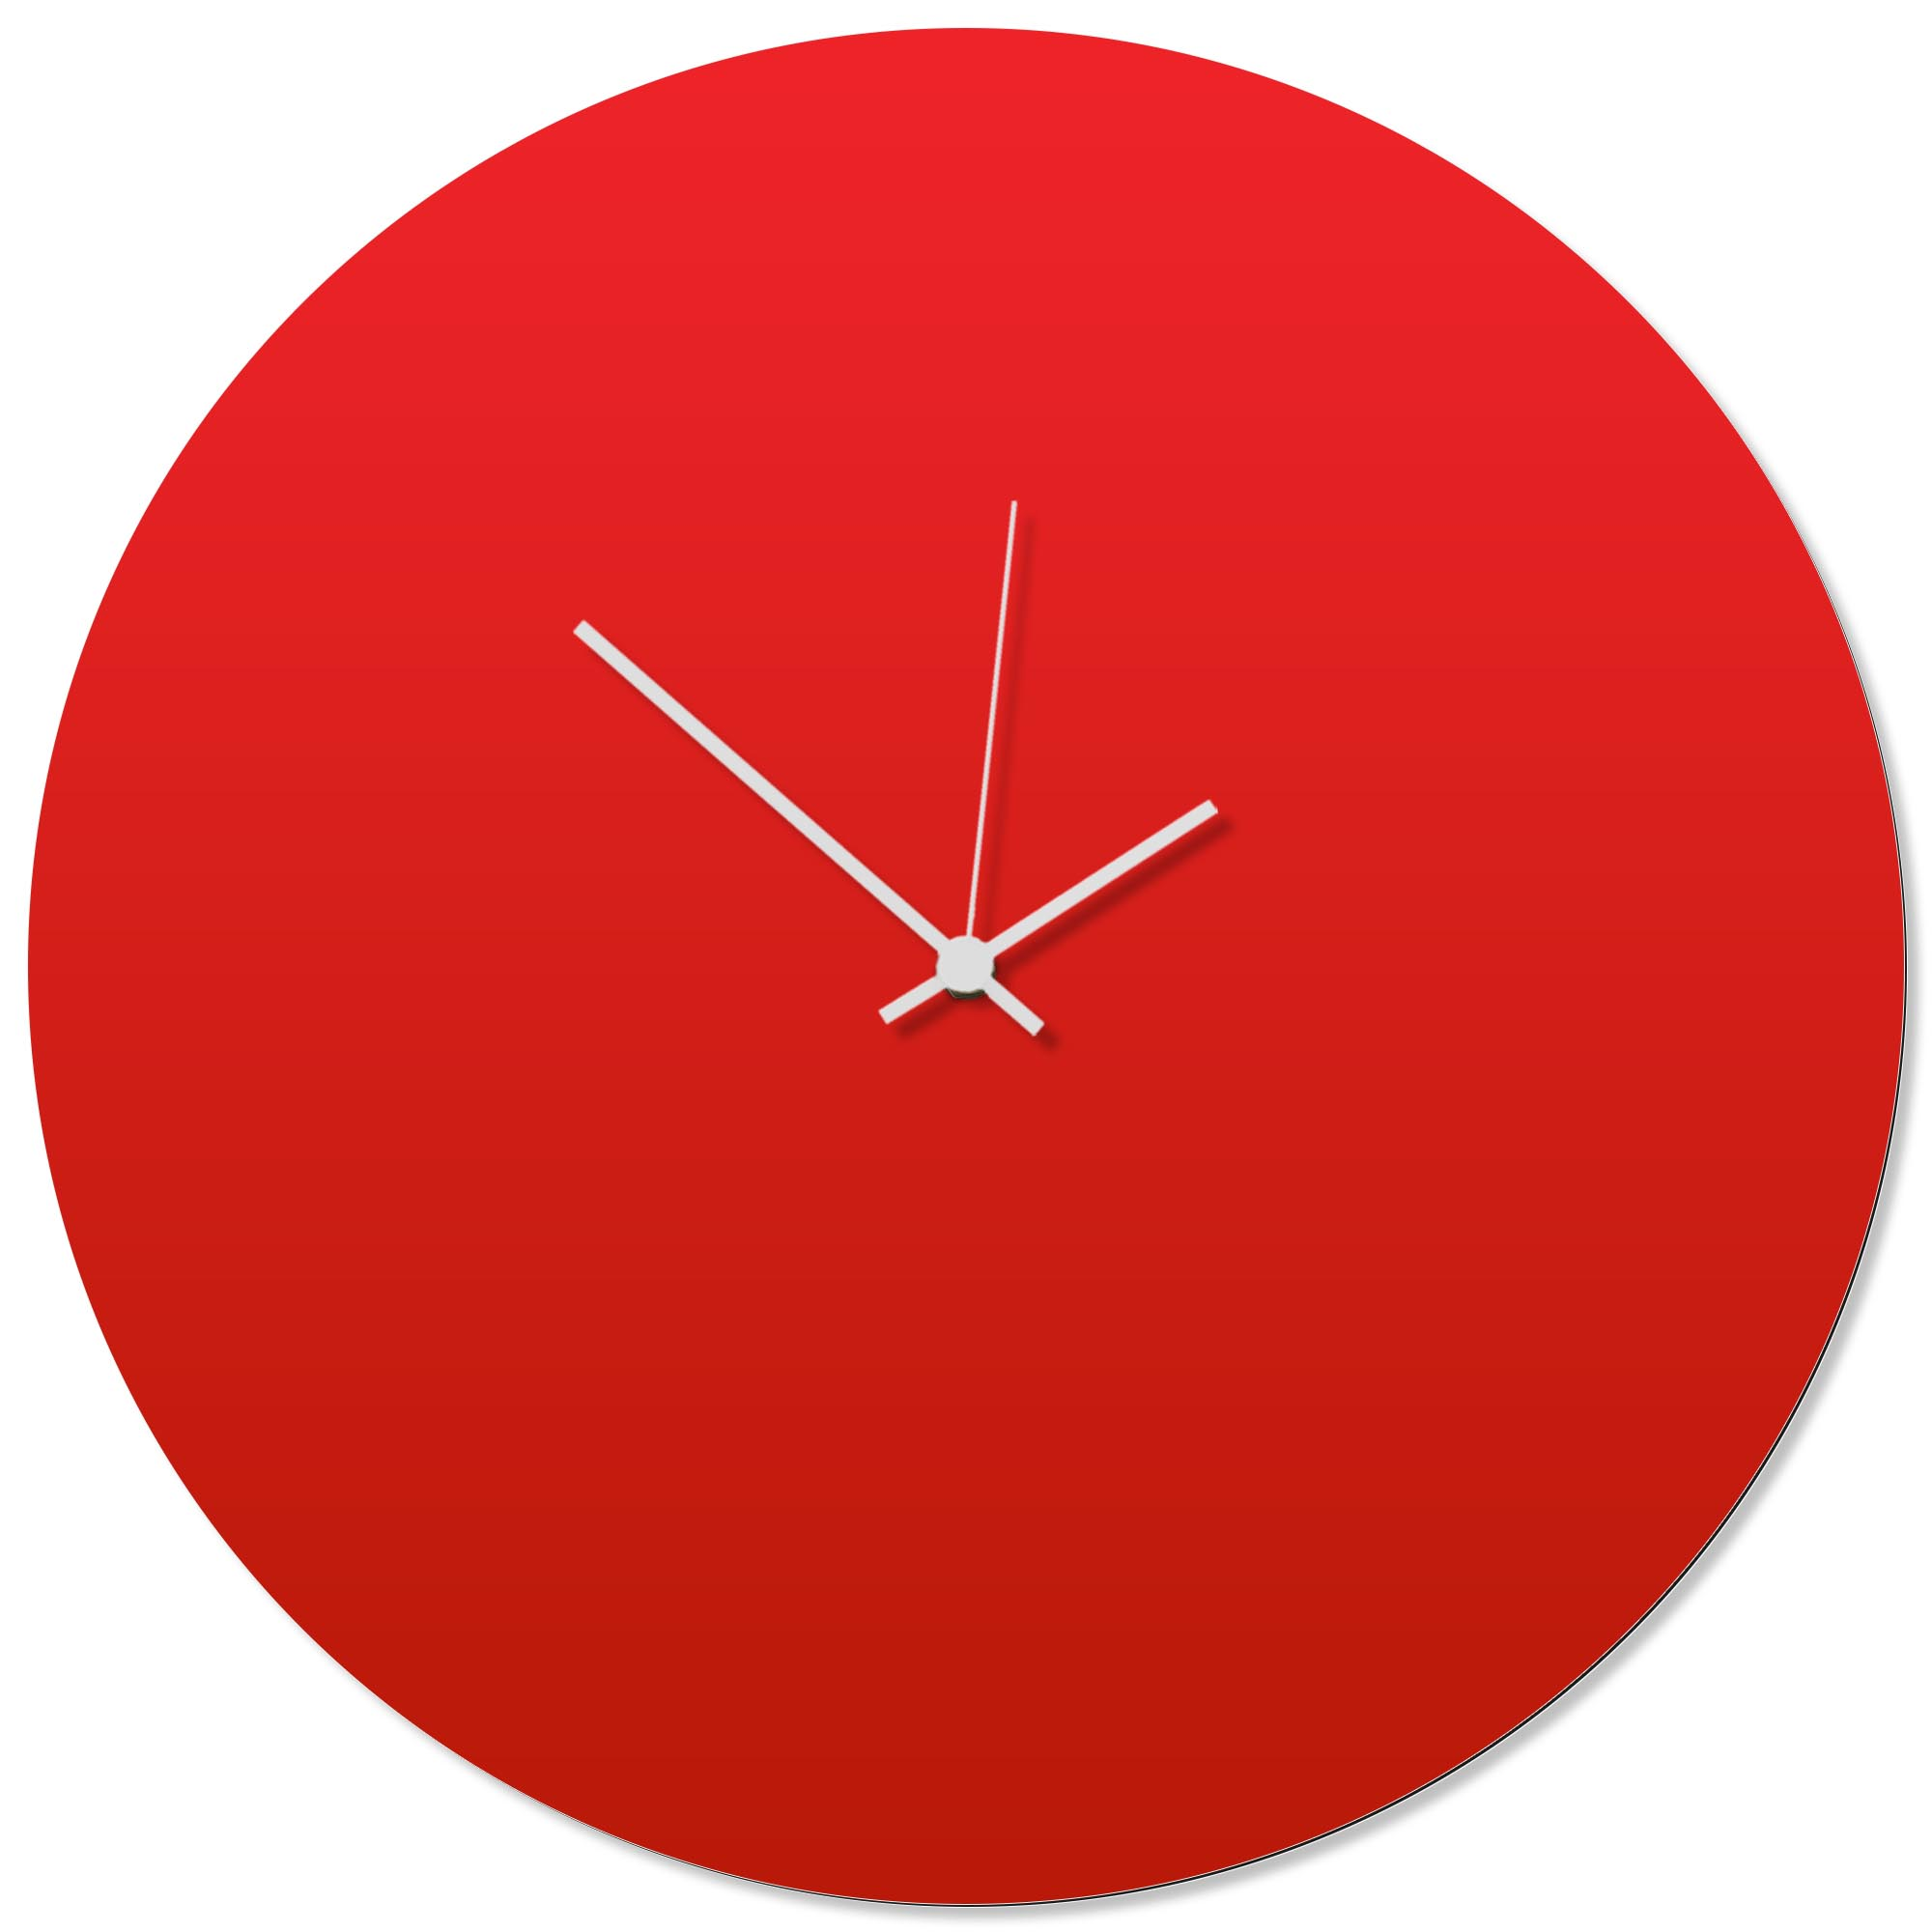 Redout White Circle Clock Large 23x23in. Aluminum Polymetal